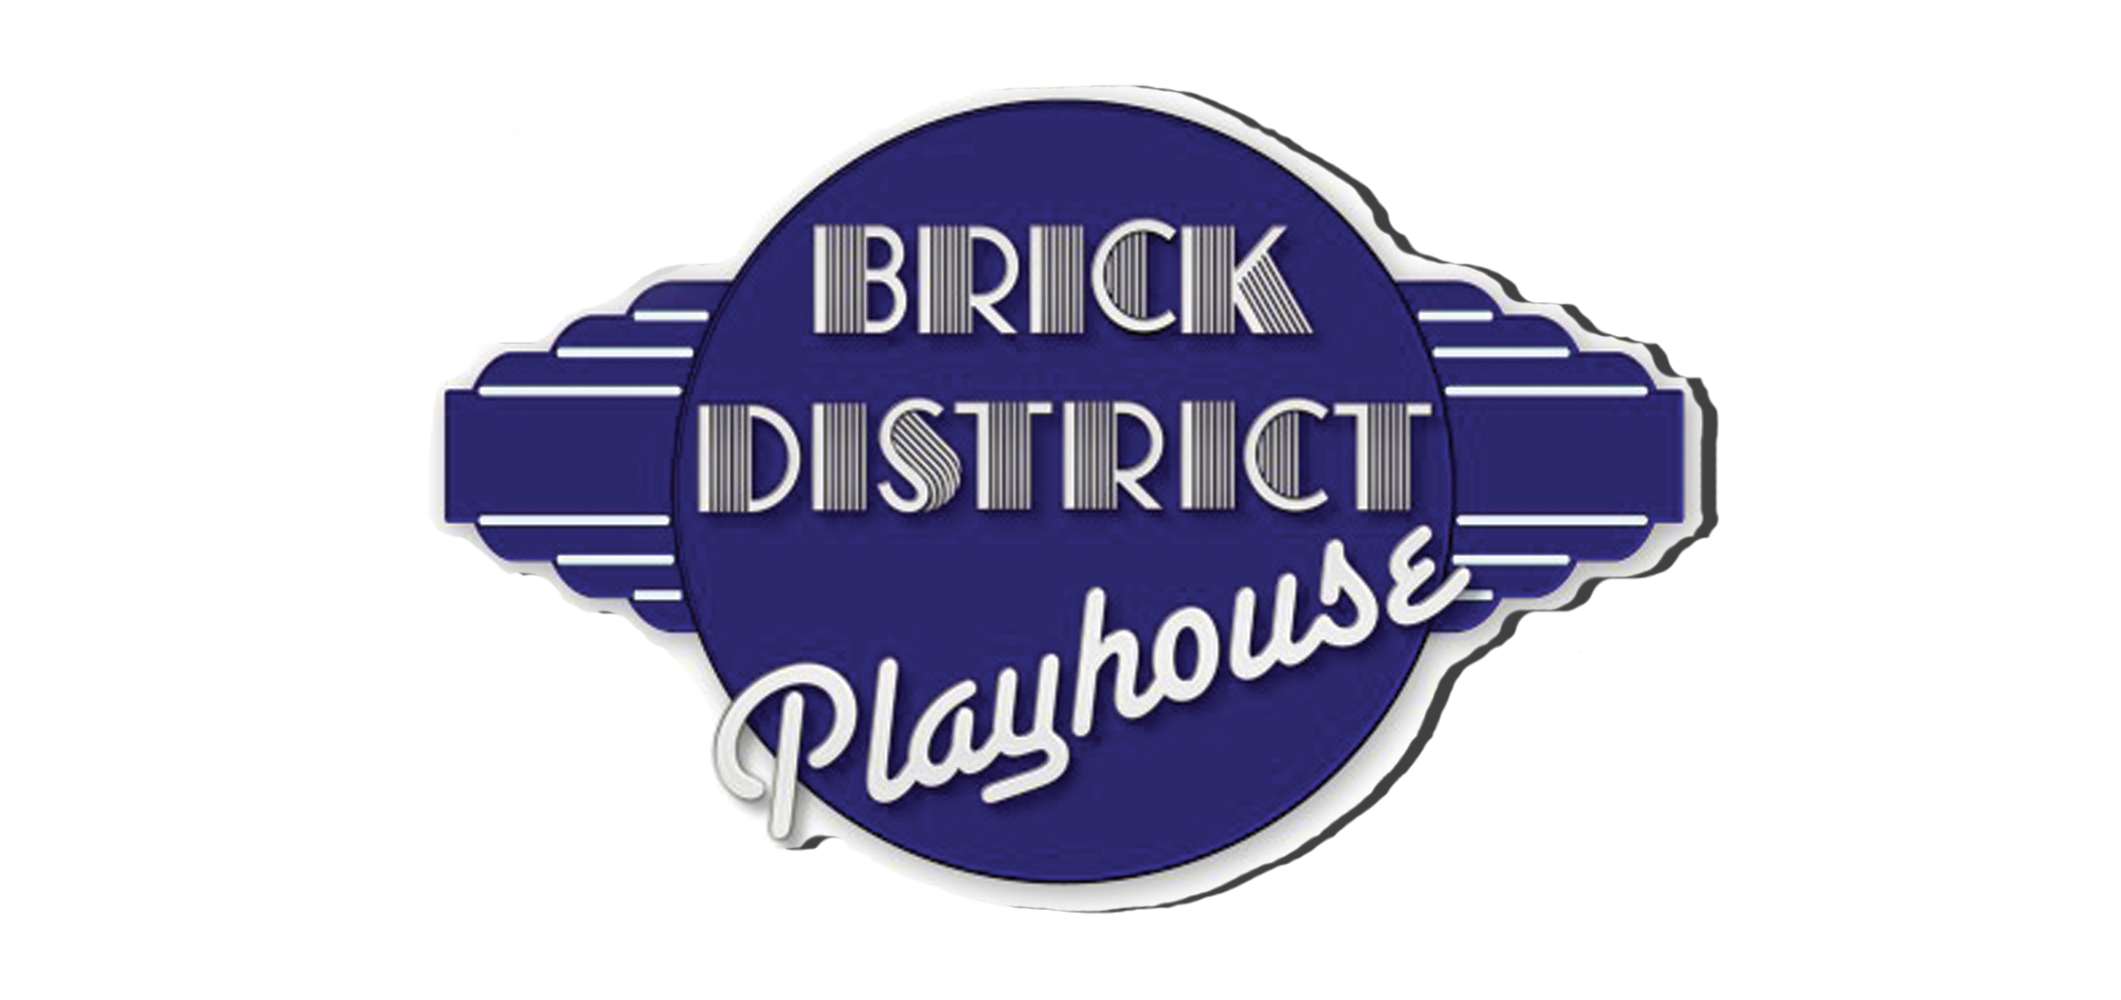 The Brick District Playhouse